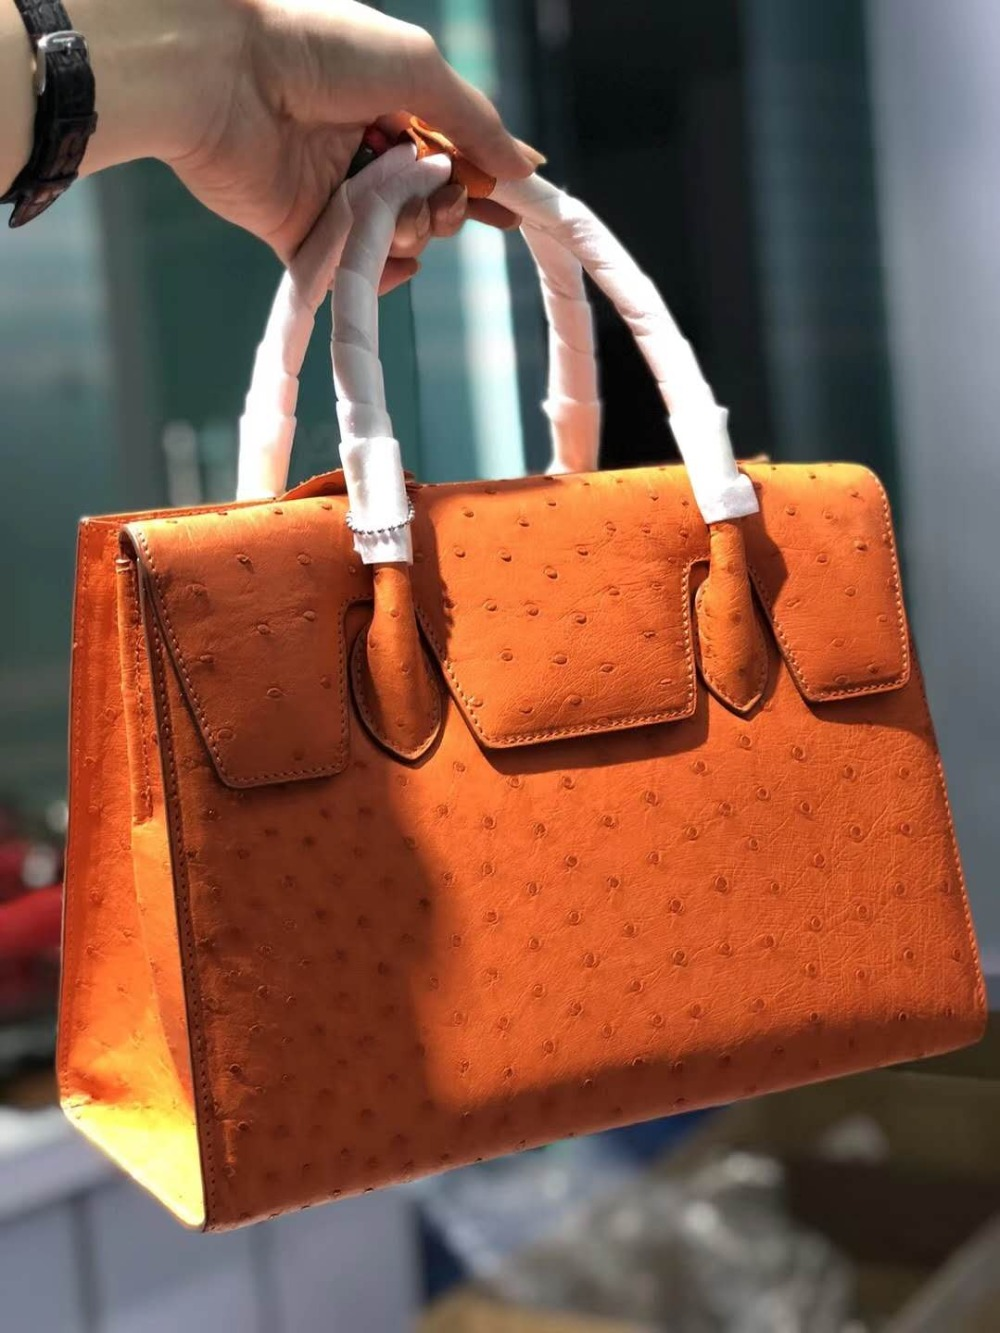 100% genuine real ostrich skin women tote bag top level quality full grain Ostrich skin women tote handbag orange purple pink100% genuine real ostrich skin women tote bag top level quality full grain Ostrich skin women tote handbag orange purple pink